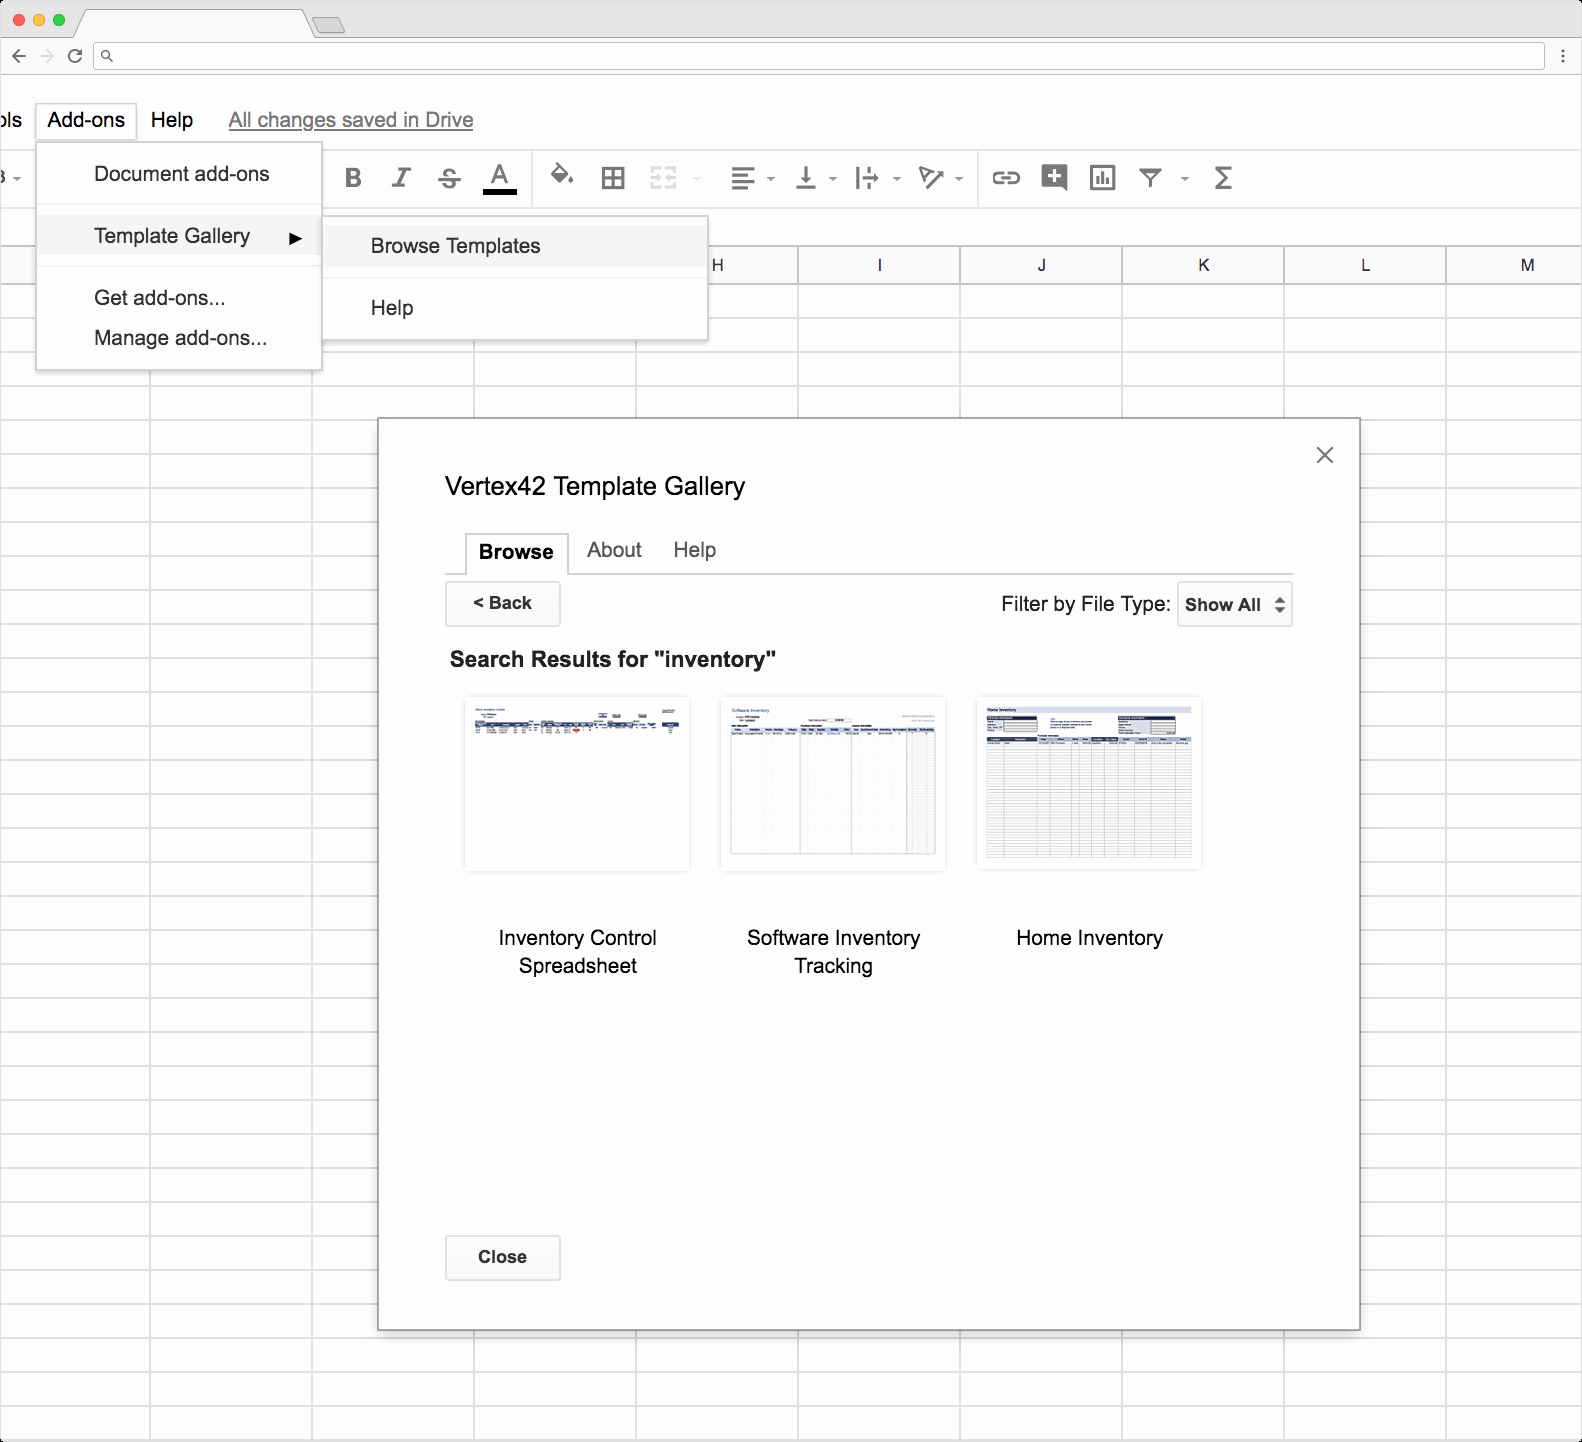 Inventory Template Google Sheets Fresh top 5 Free Google Sheets Inventory Templates Blog Sheetgo